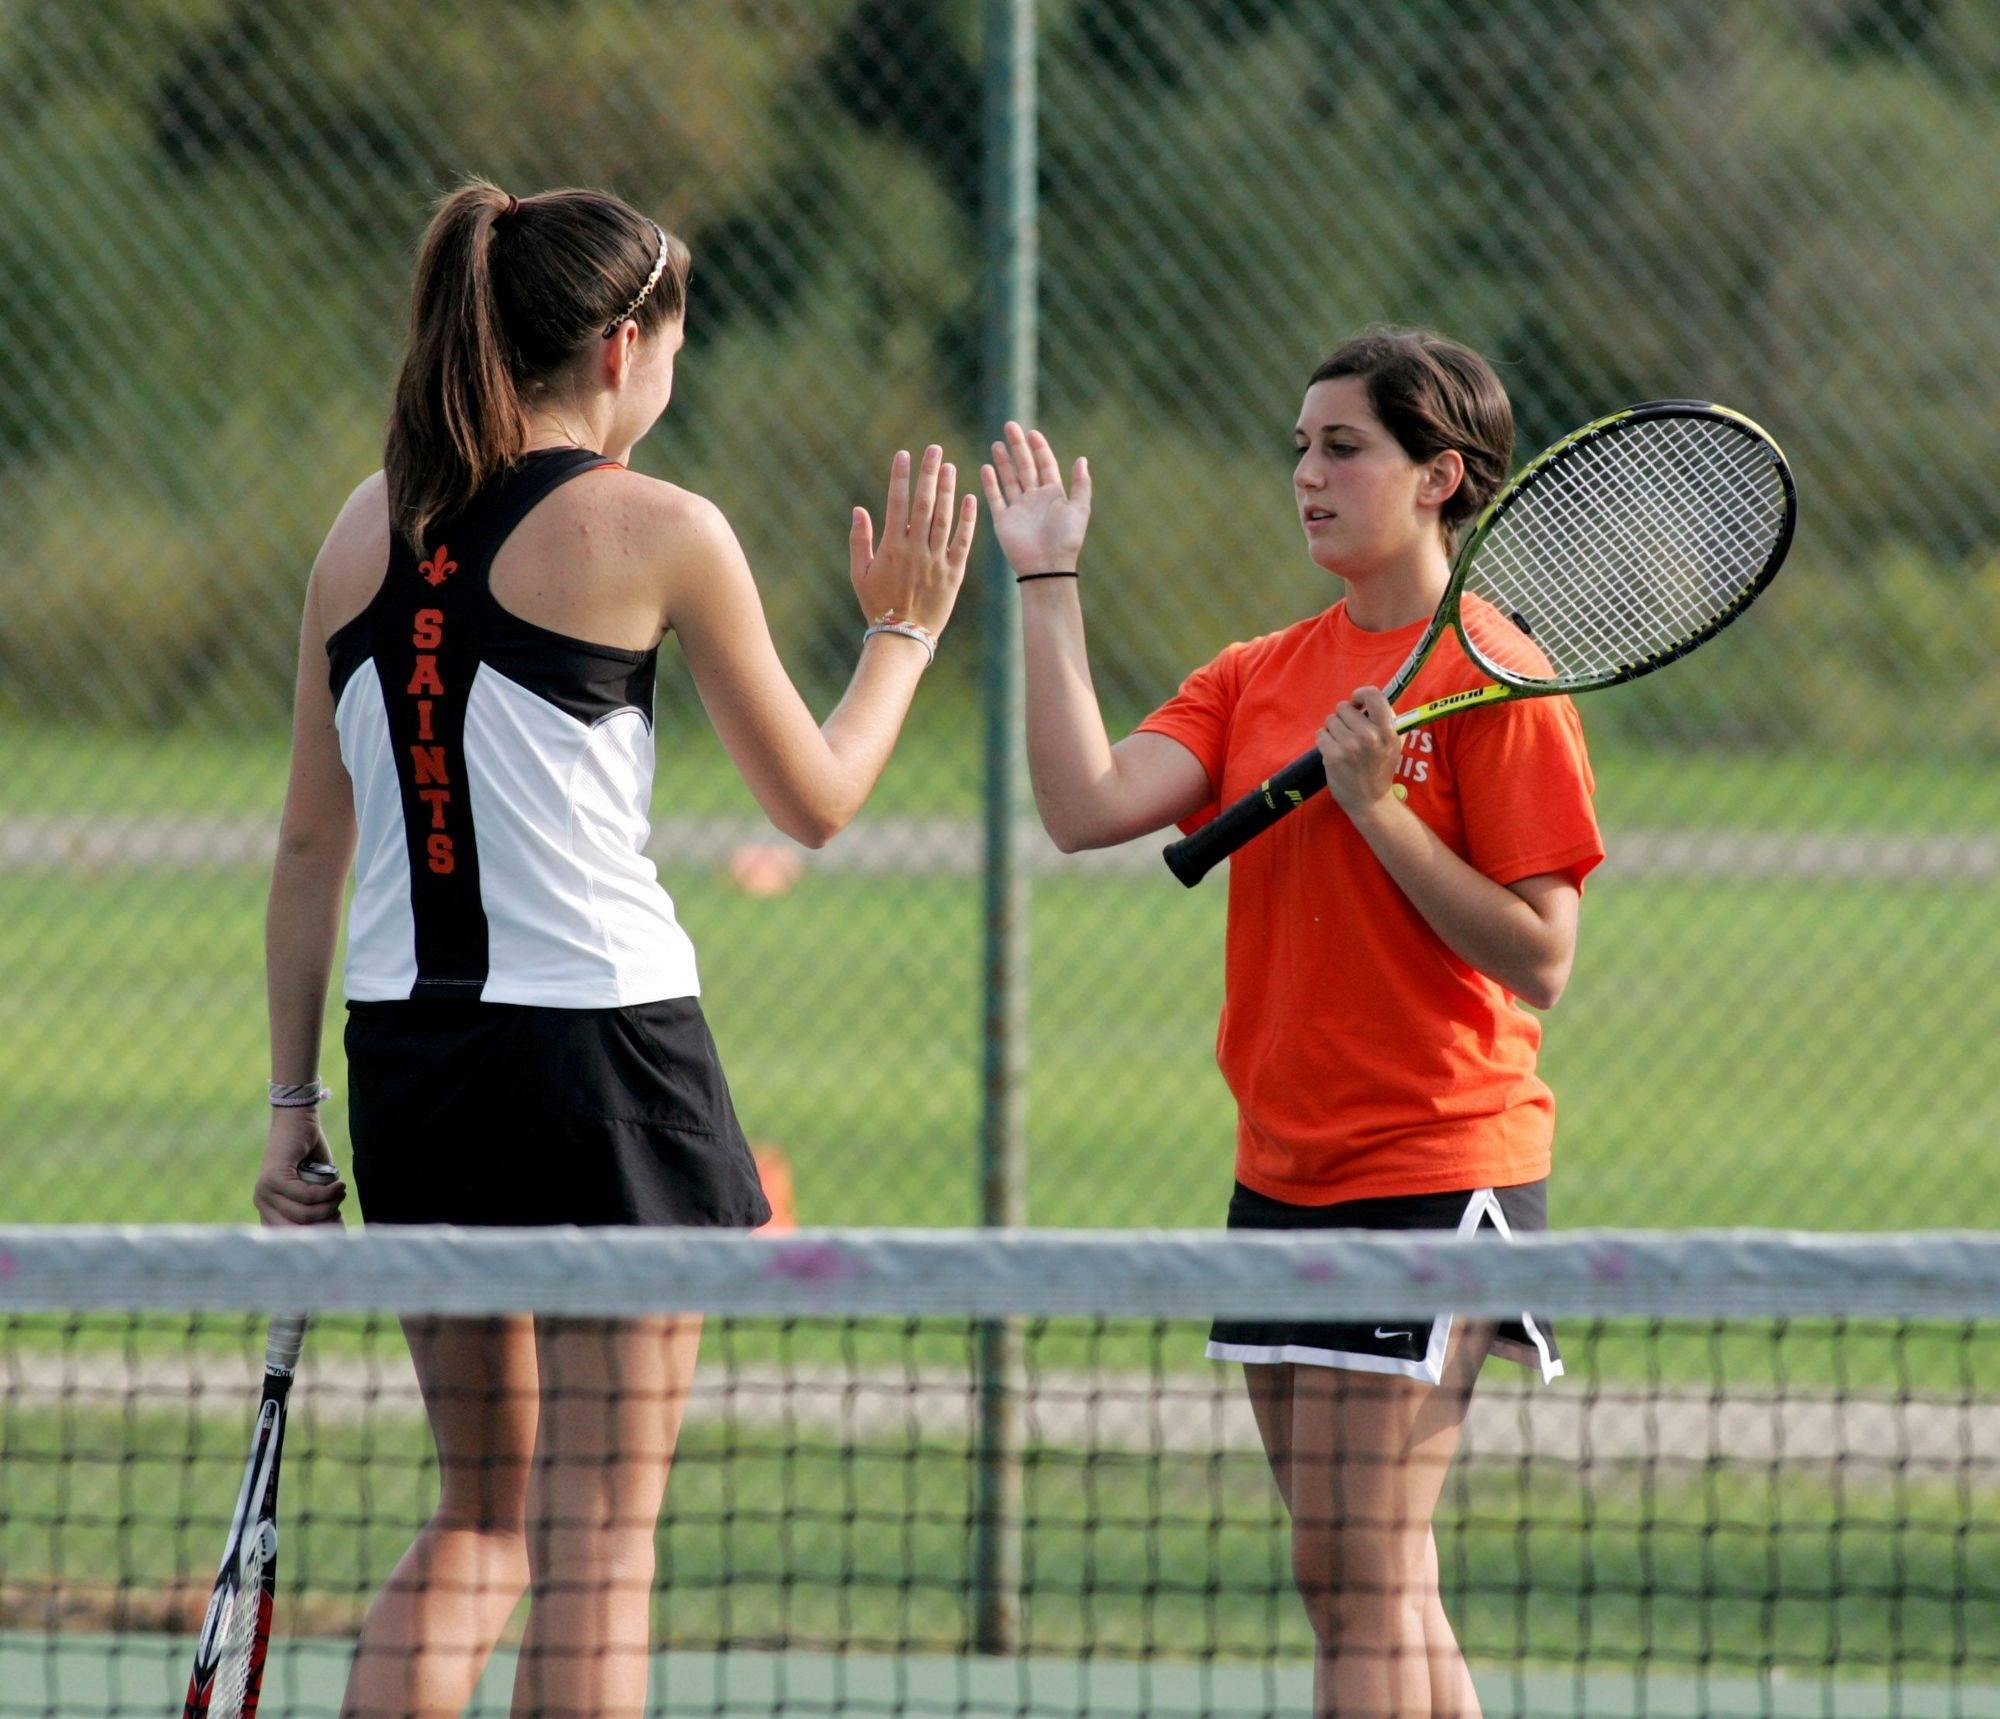 St. Charles East's Erin Bowman, right, with partner Claire Hafner earlier this year against St. Francis, recently won her 100th career match for the Saints.